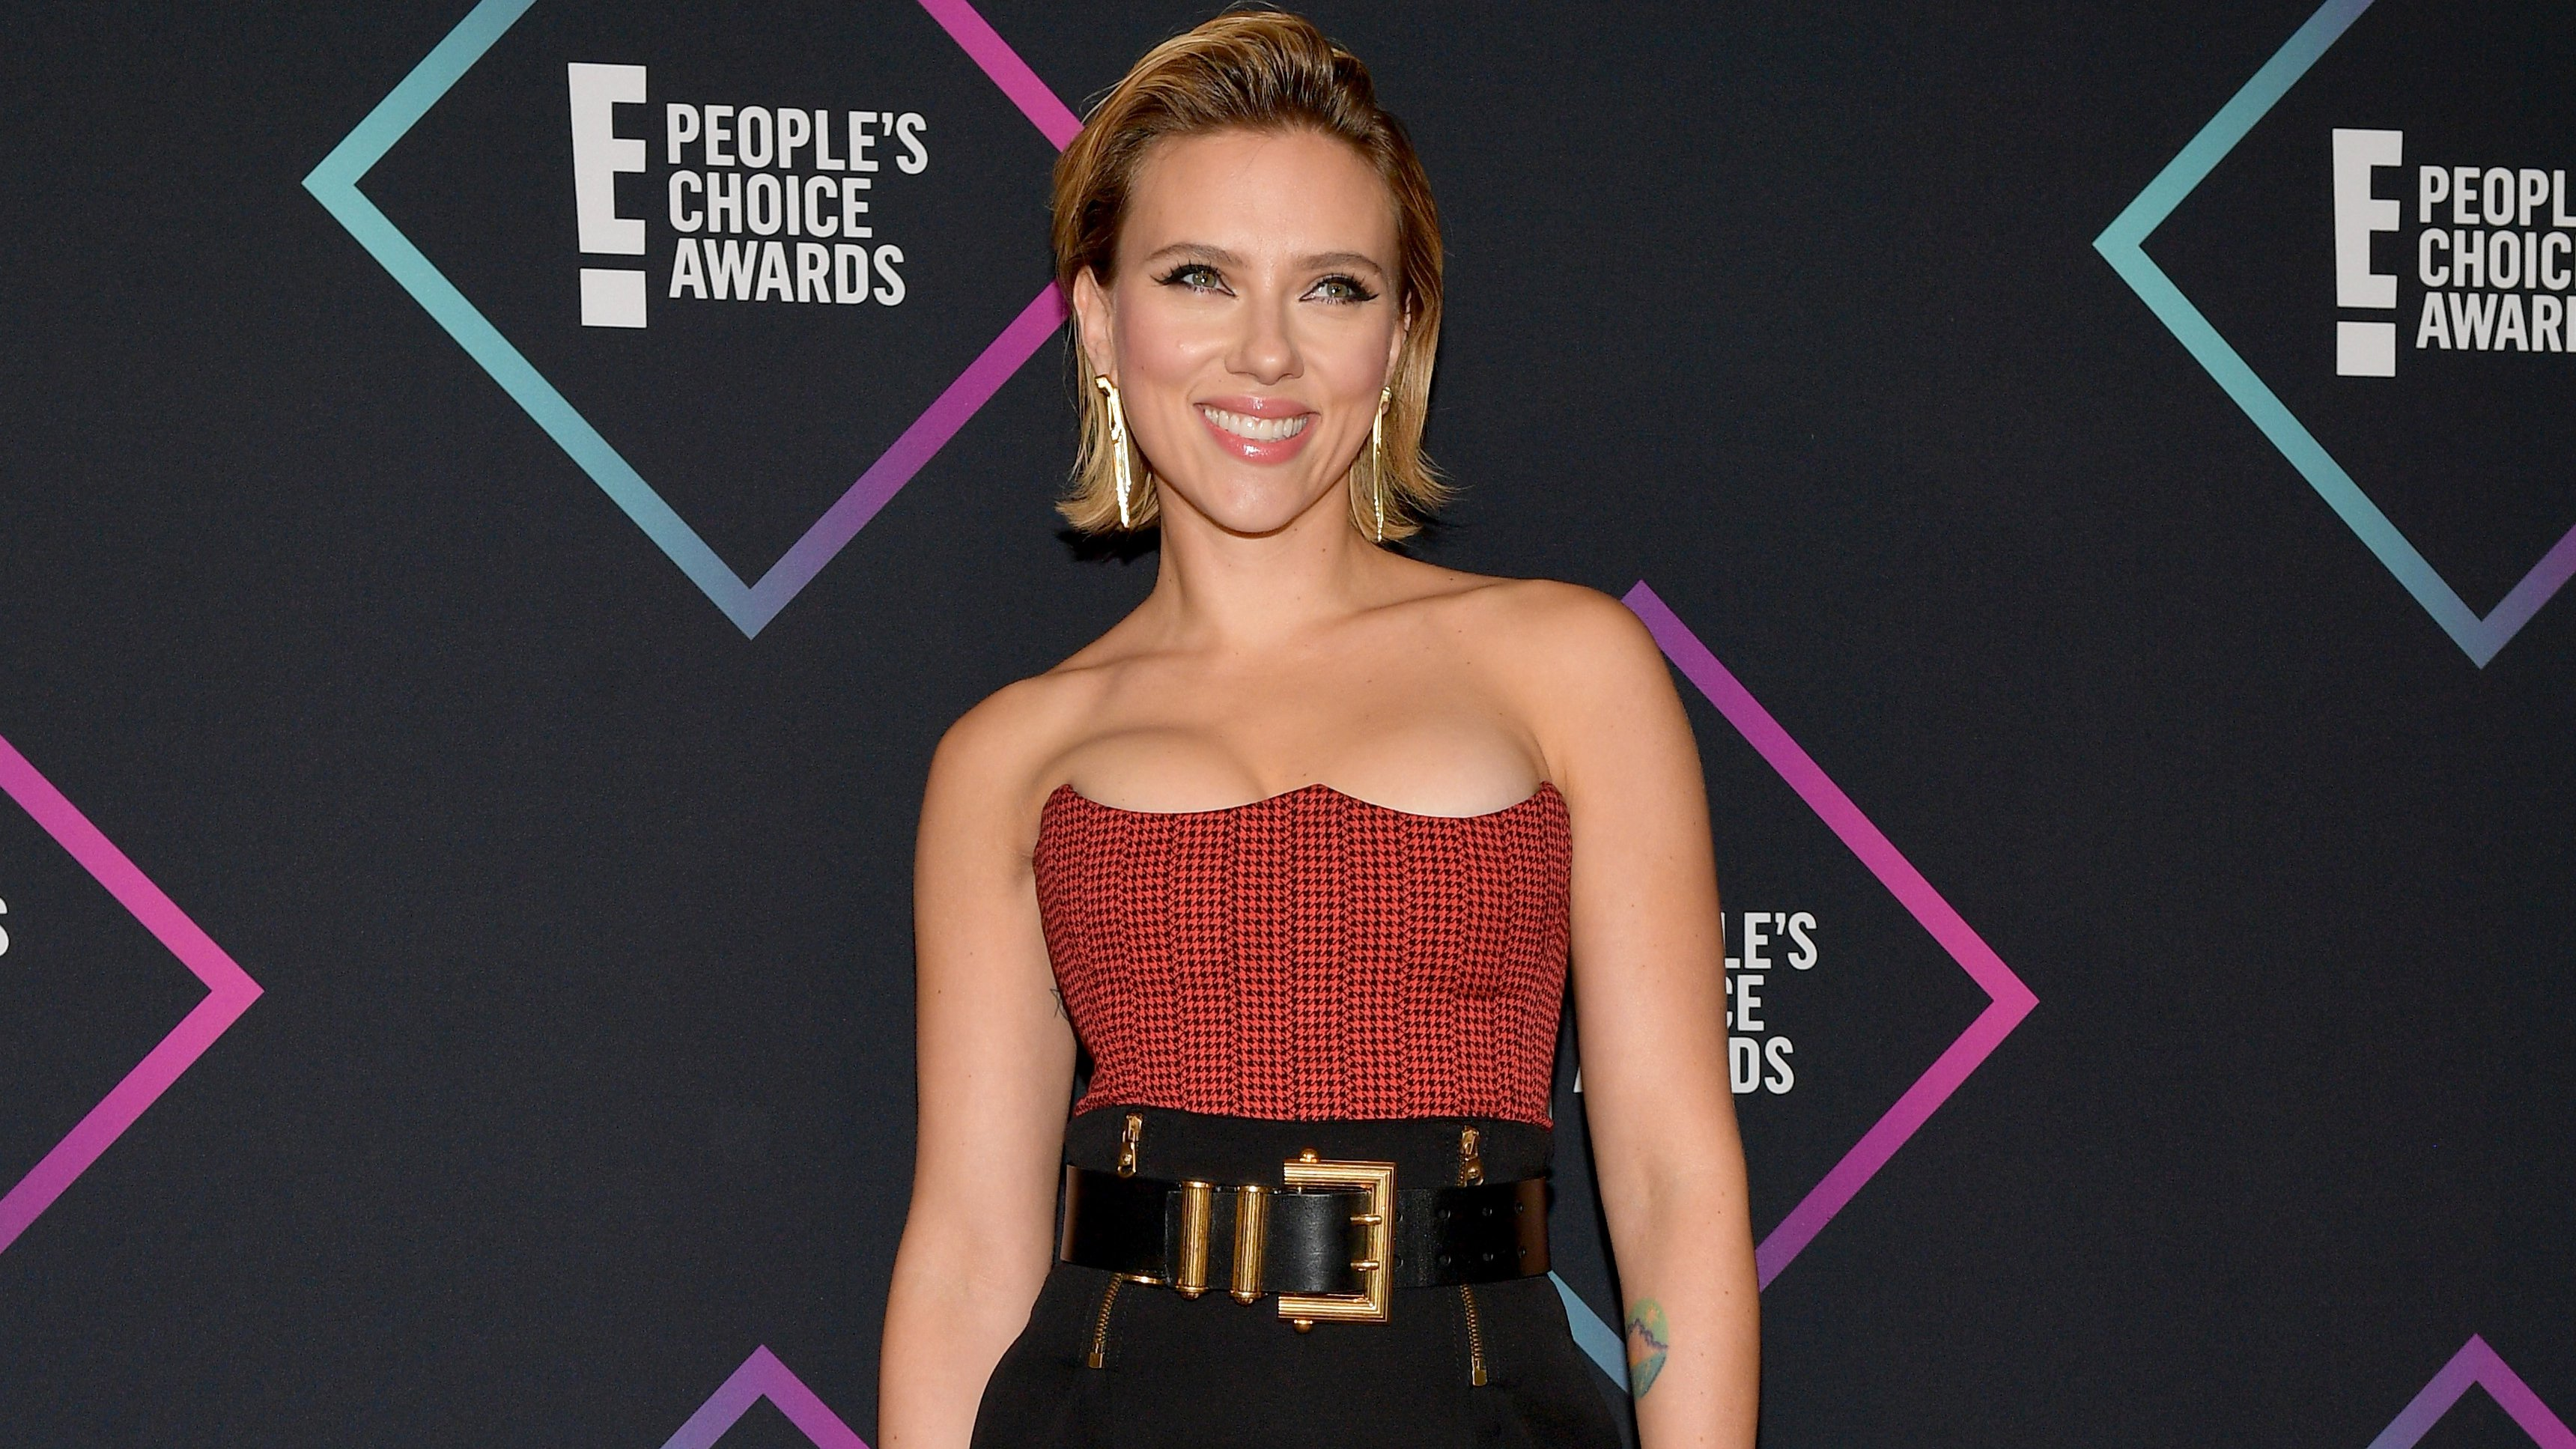 221a68be31 Scarlett Johansson Sizzles In A Corset-Style Top As She Wins Big At 2018  People s Choice Awards